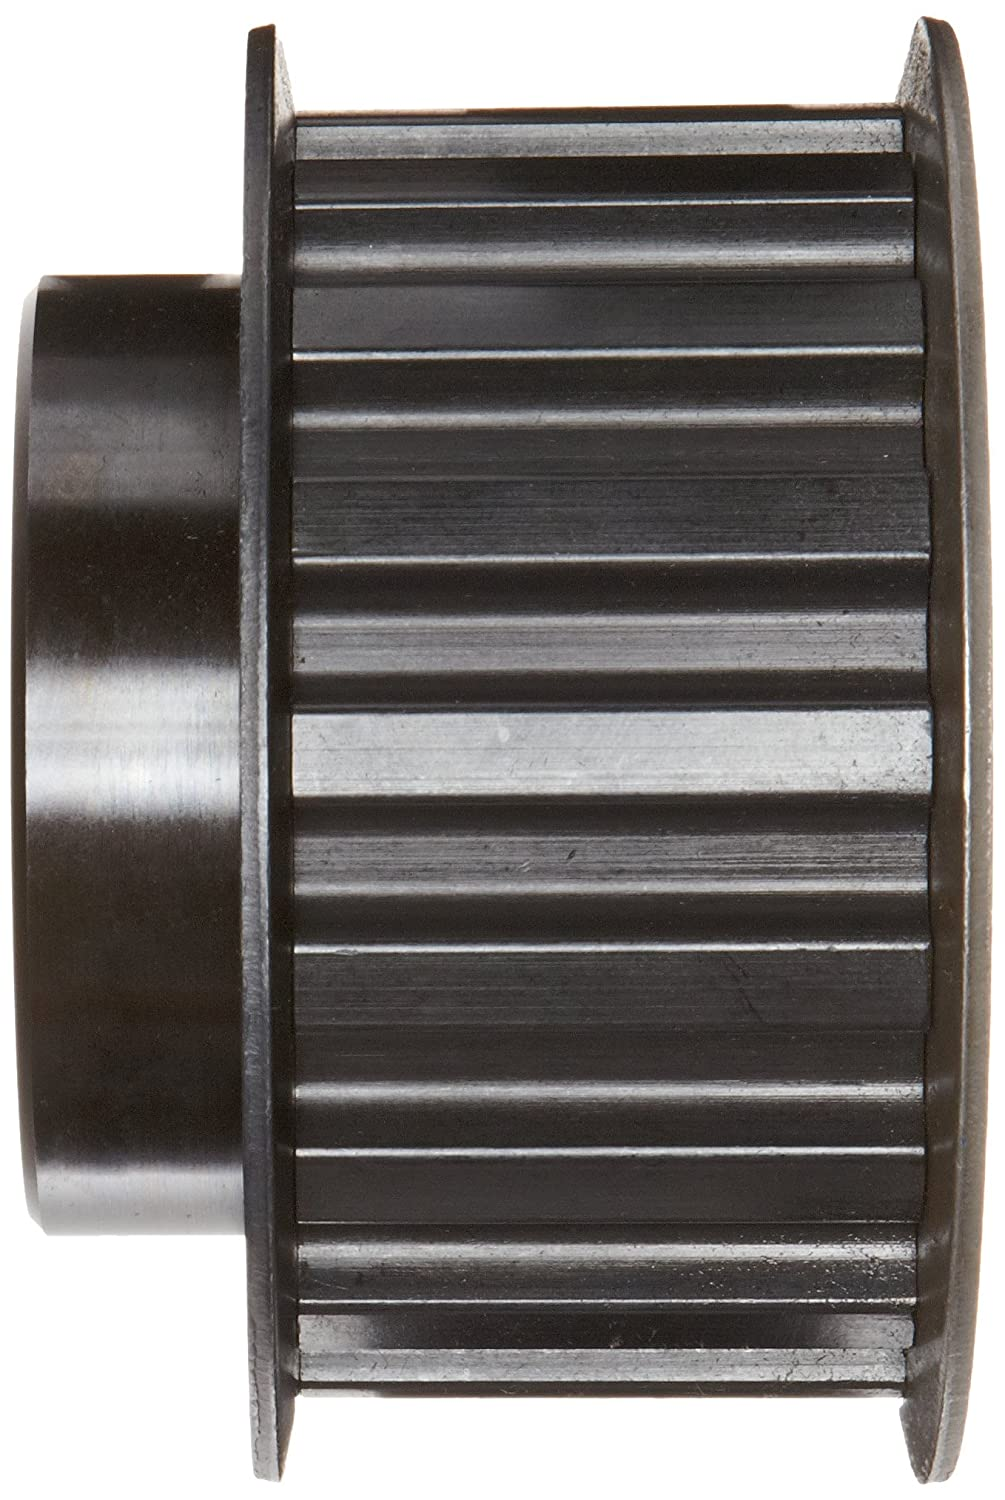 Extra Light Martin 15XL037 DF-1 Style 1//4 And 3//8 Wide Belts 1//5 Pitch 0.25 Bore Timing Pulley